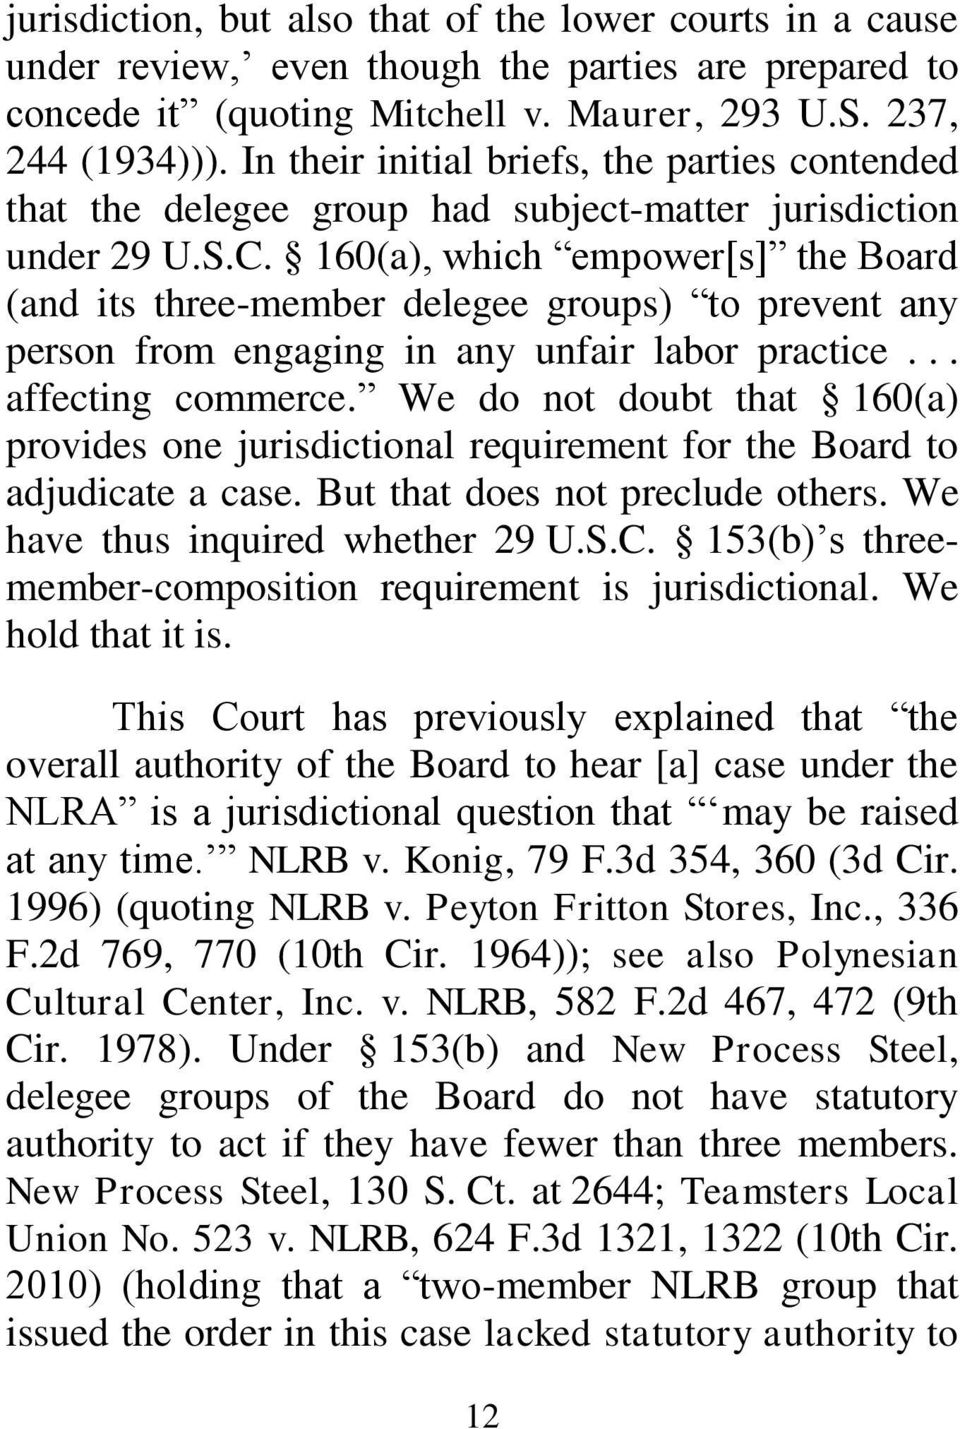 160(a), which empower[s] the Board (and its three-member delegee groups) to prevent any person from engaging in any unfair labor practice... affecting commerce.